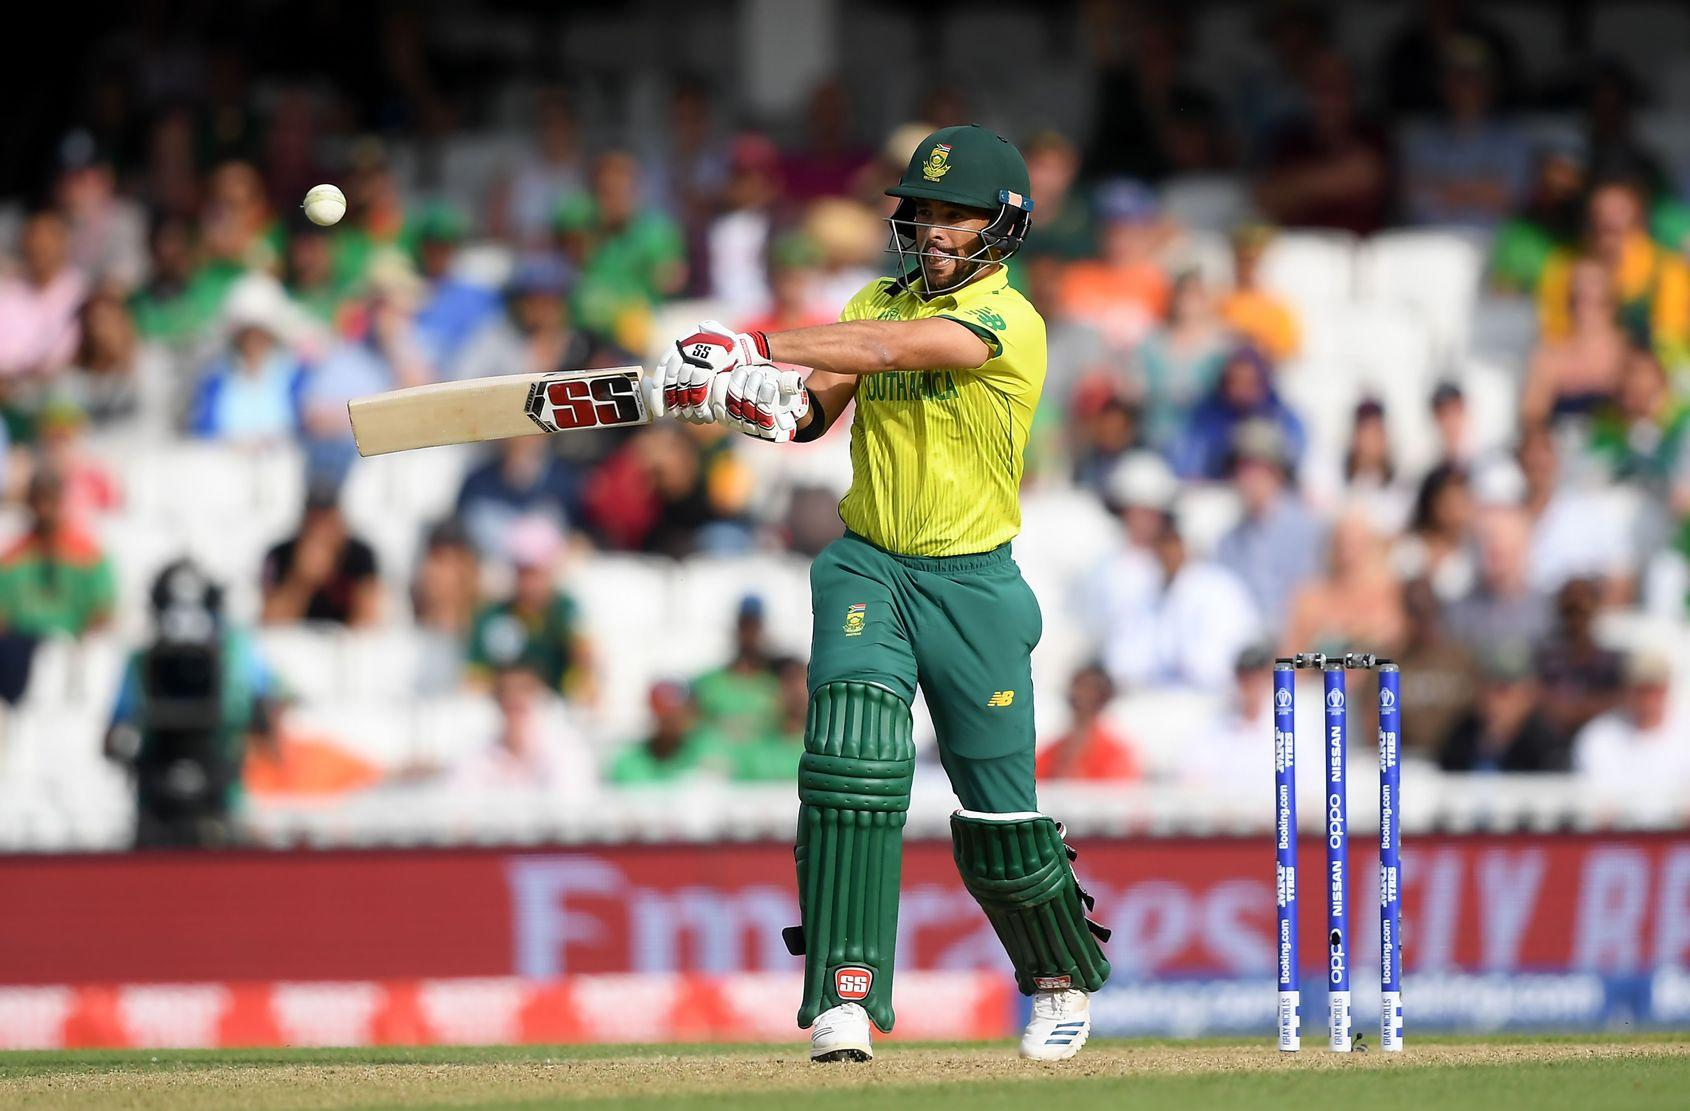 Honest JP Duminy calls on South Africa's stars to step up in